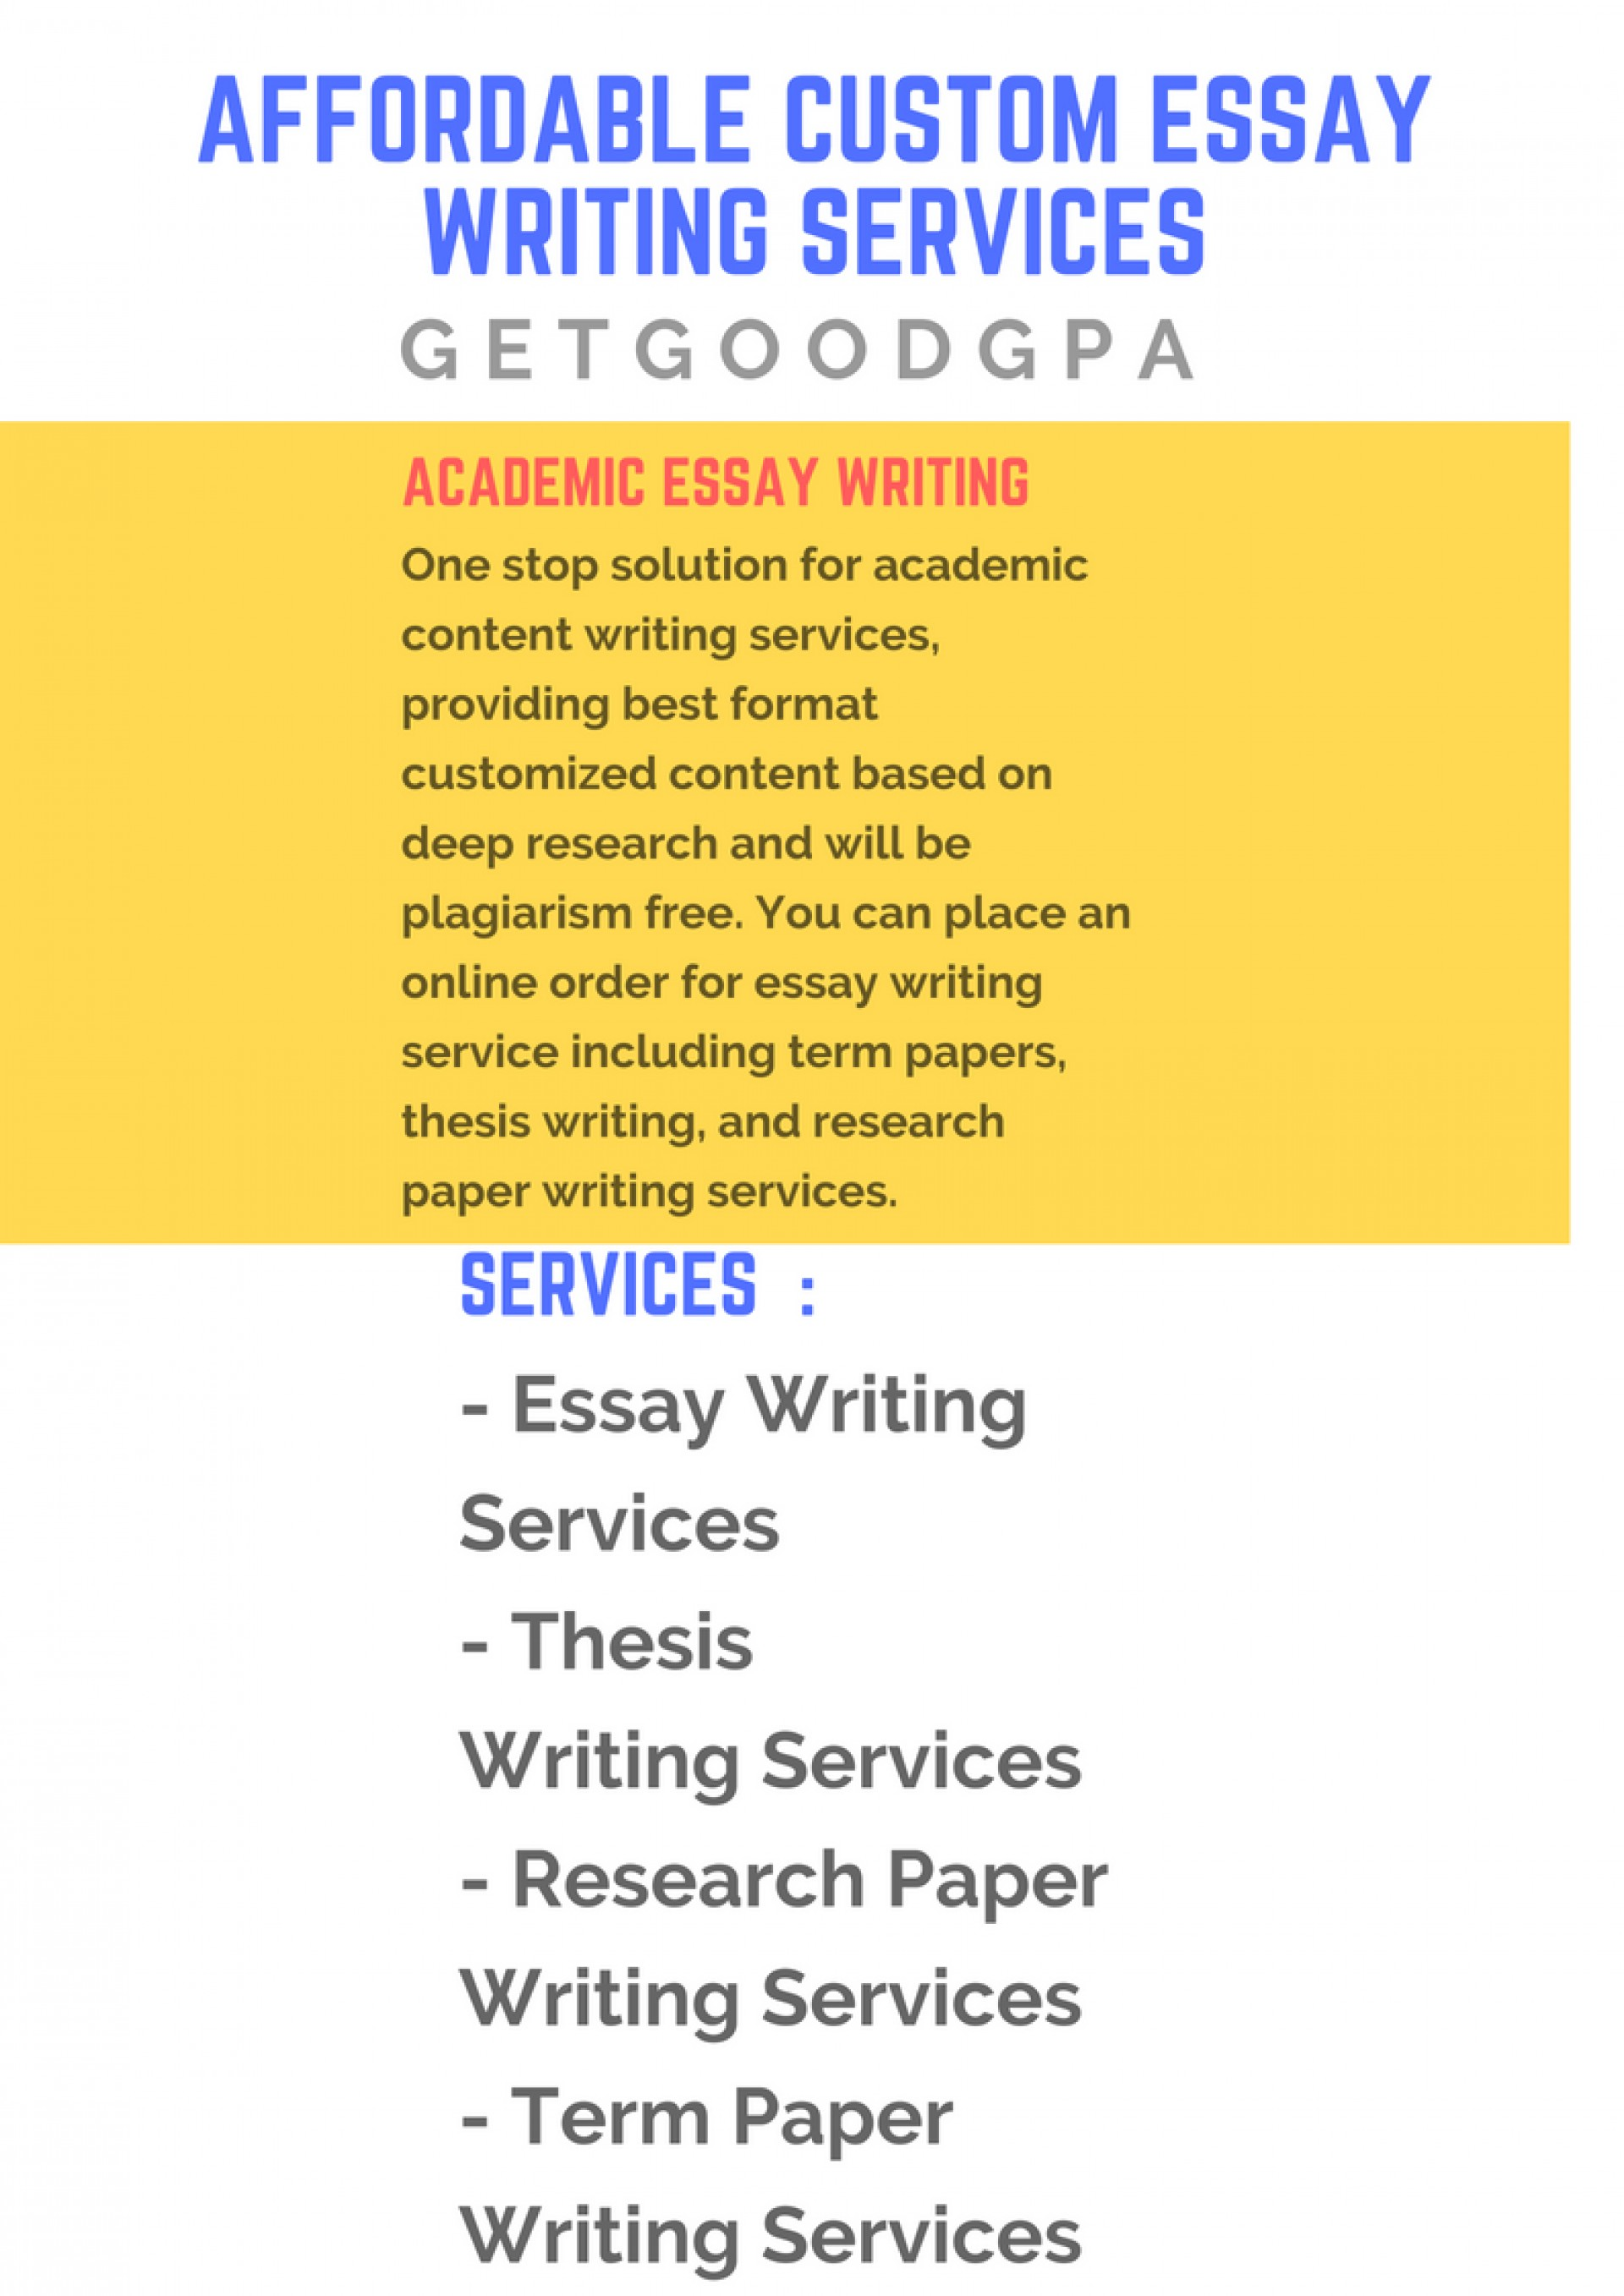 research paper writing services in mumbai